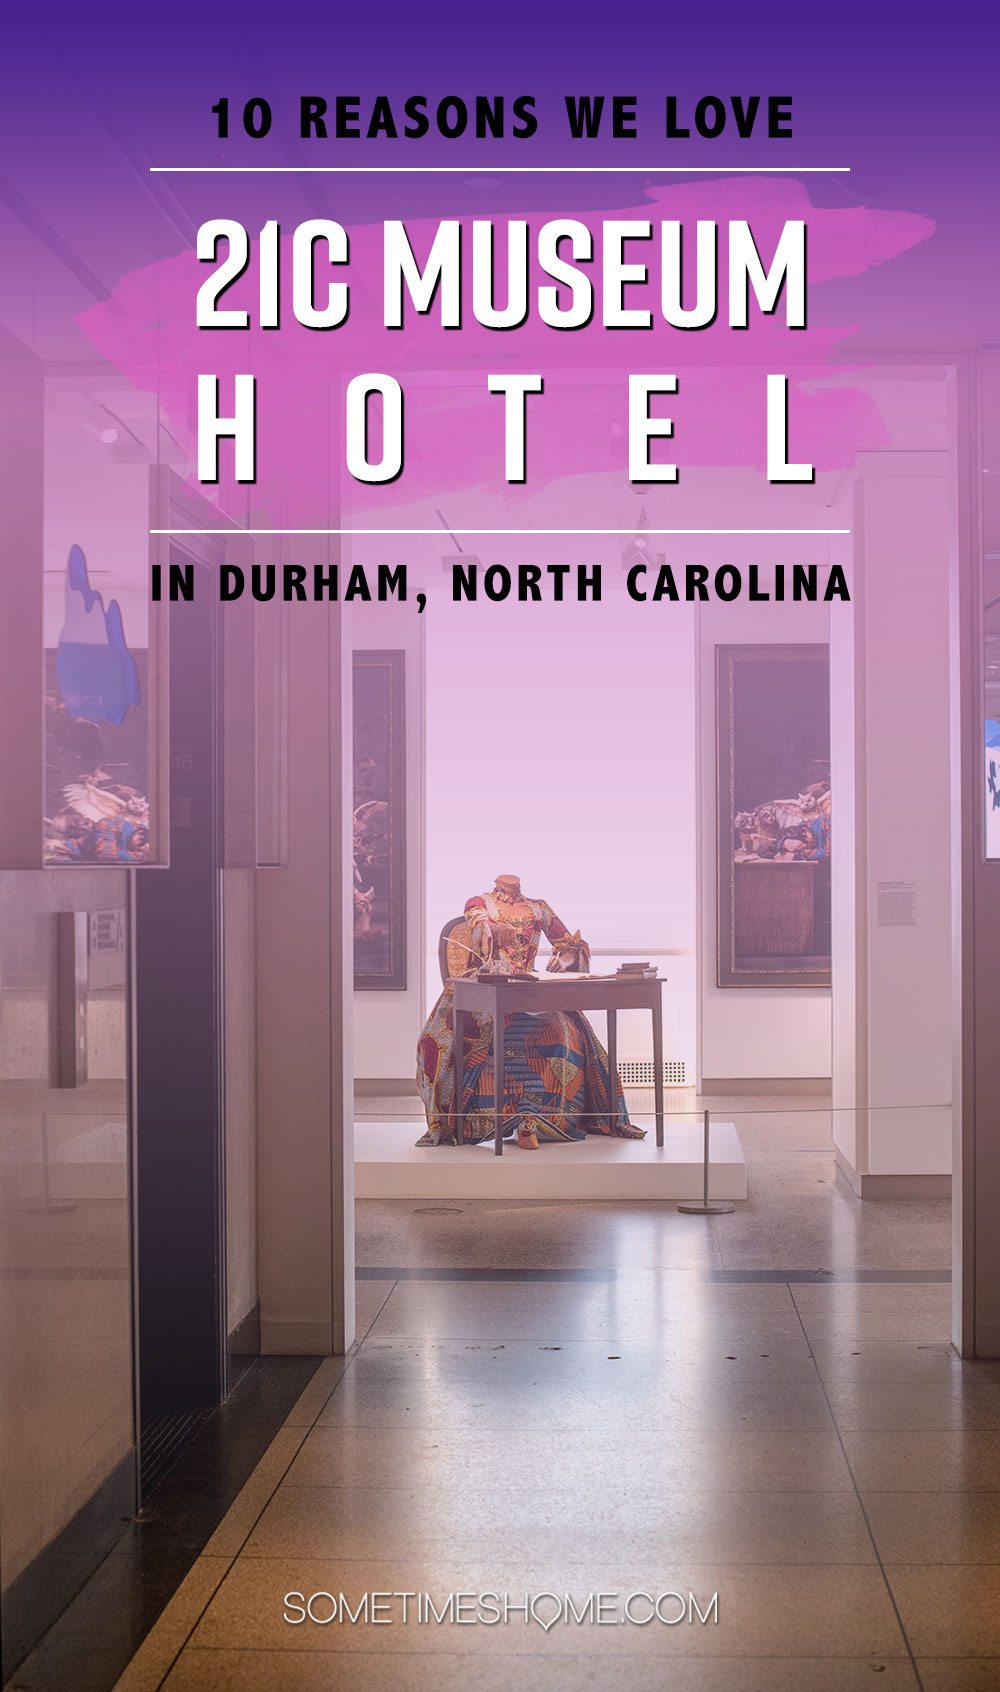 10 Reasons We Love 21c Museum Hotel in Durham NC and You Will Too including location in downtown Durham. Photos and information on Sometimes Home travel blog including their pink penguins, a signature of the hotel!